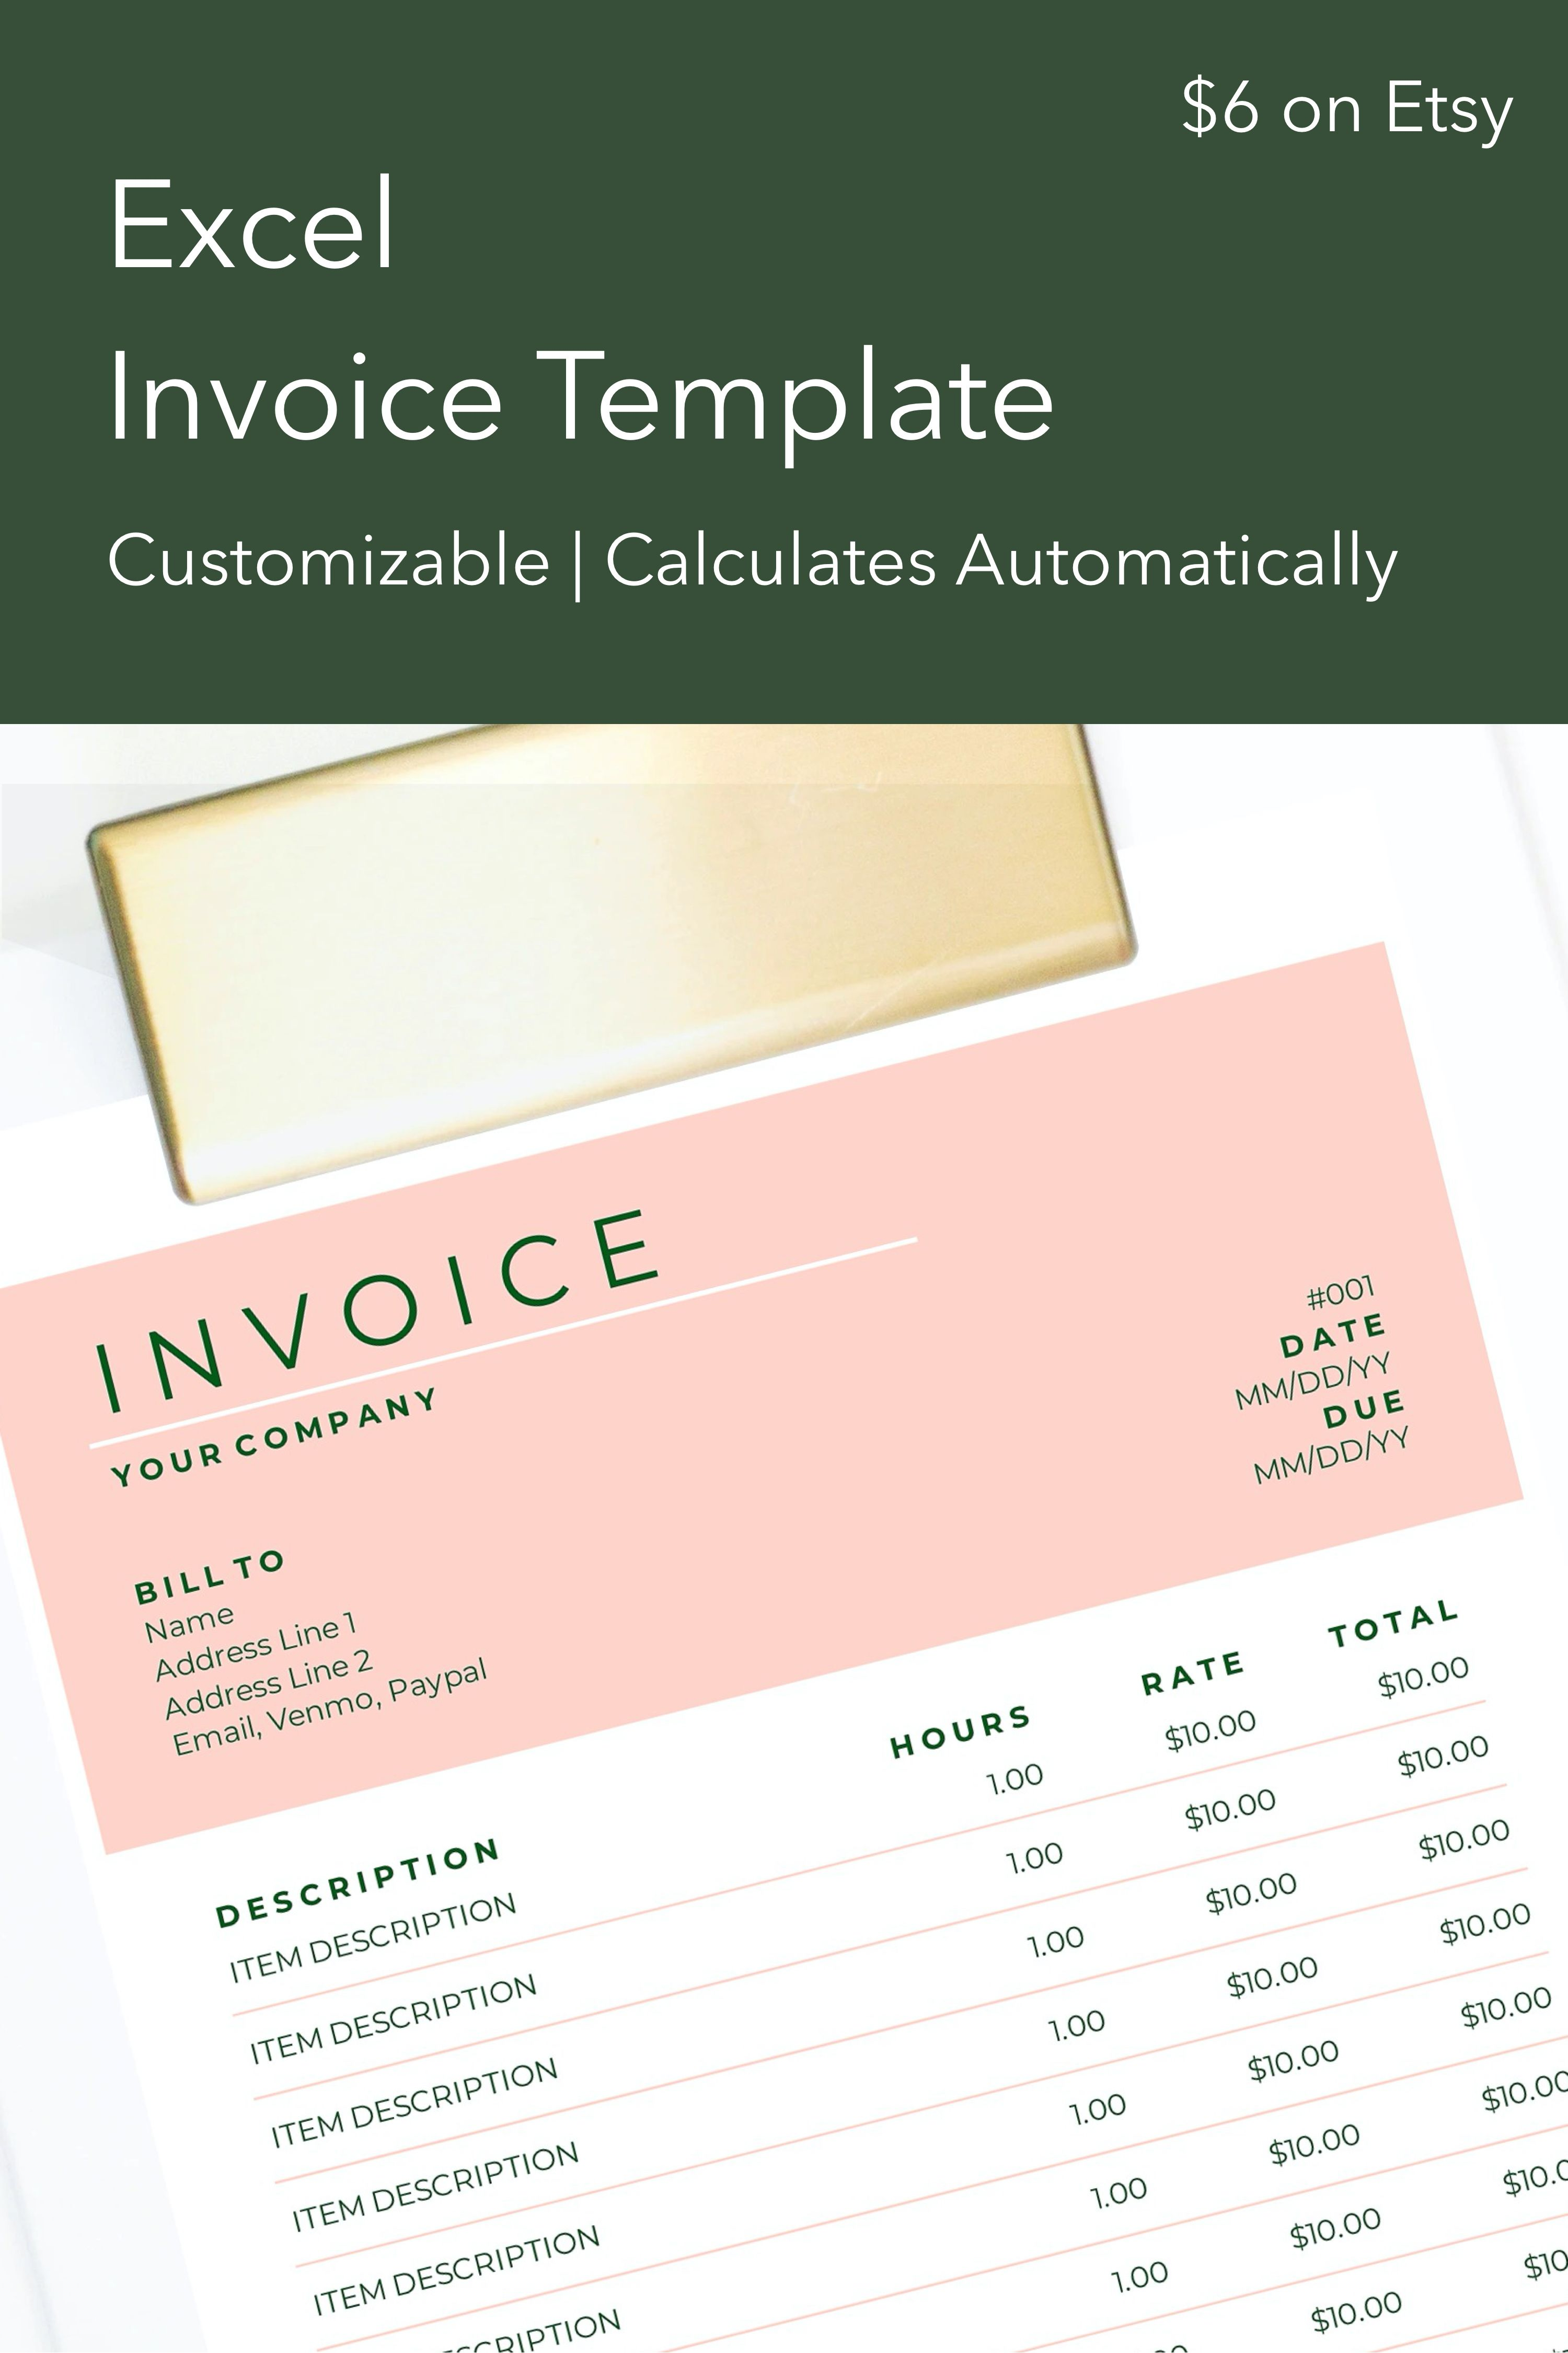 Design Excel Invoice Clean Modern Freelance Shop Etsy Invoice Template Invoice Design Photography Invoice